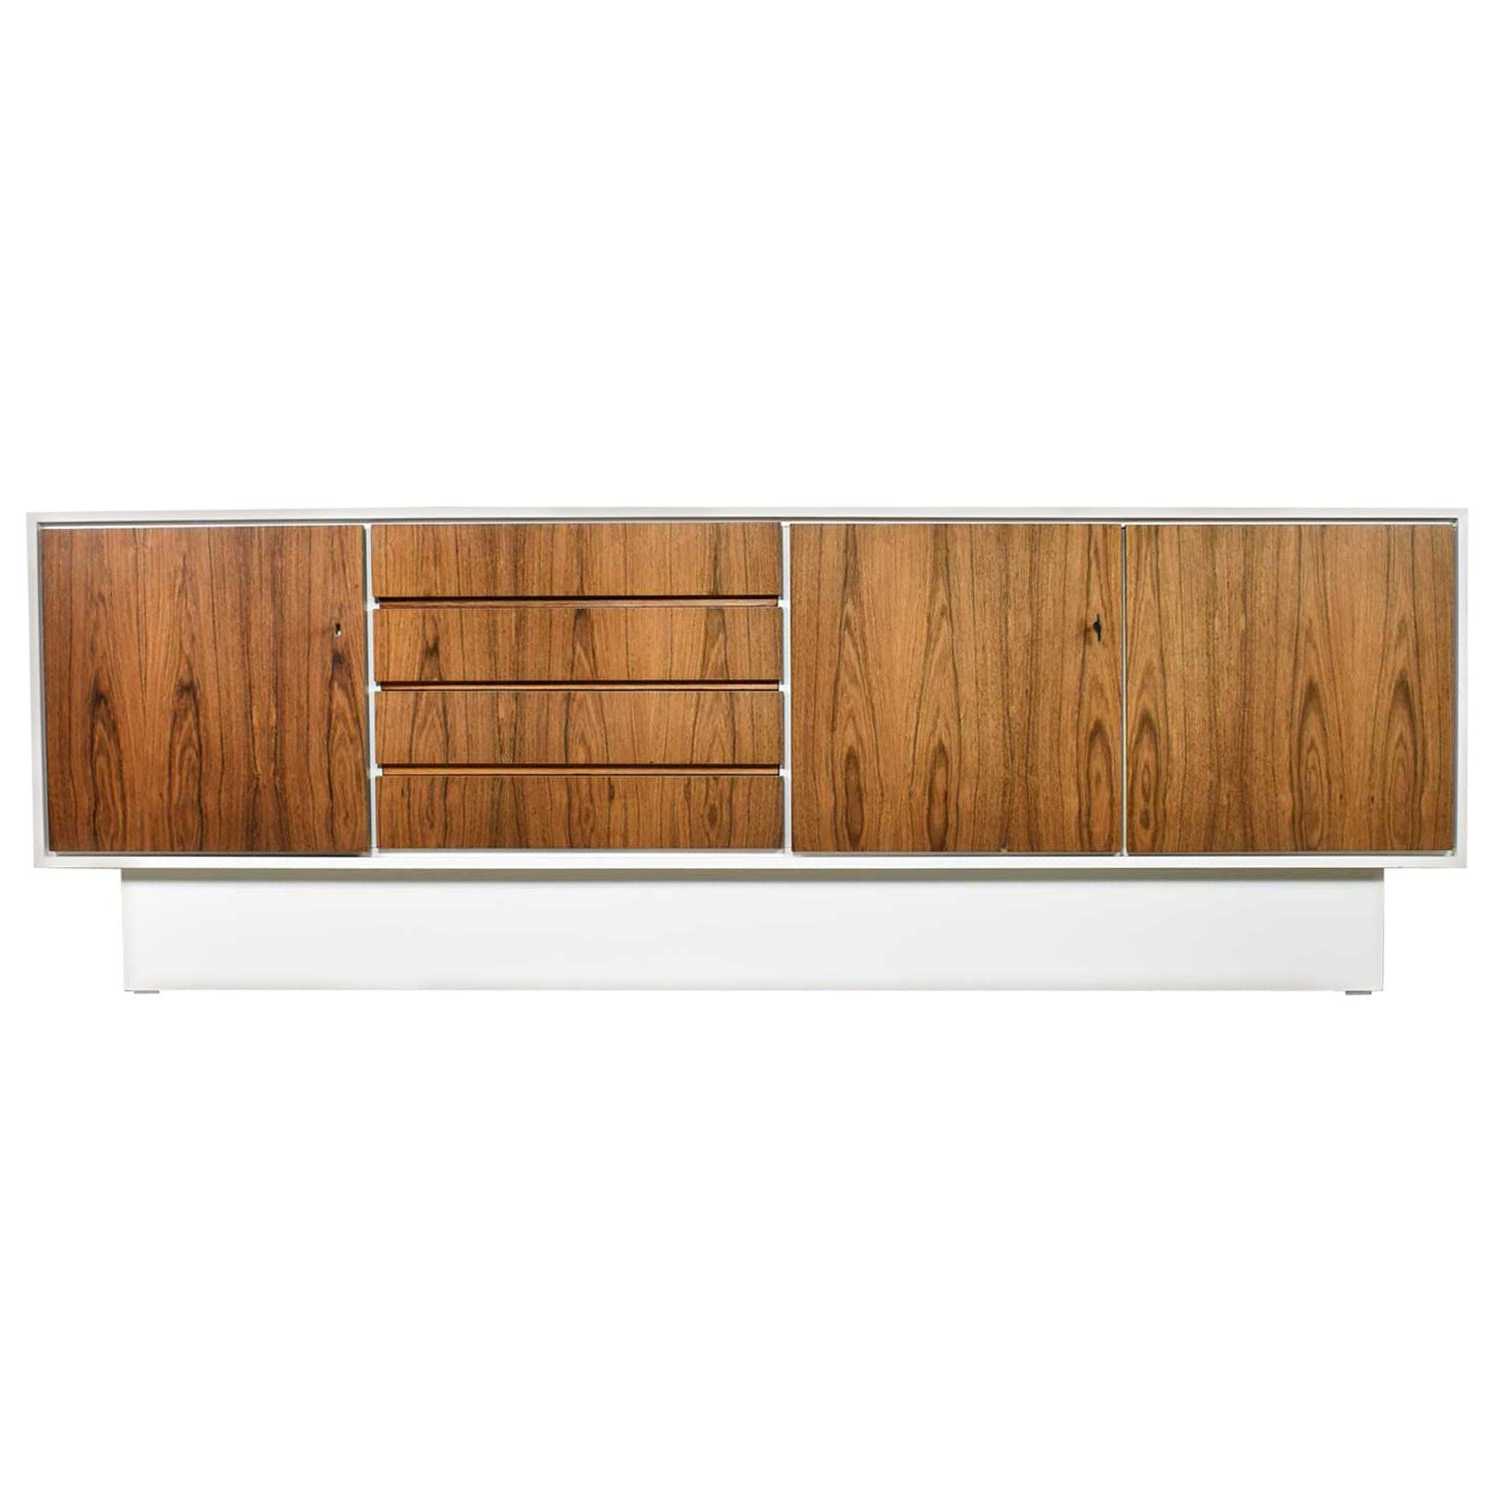 Mid Century Modern Scandinavian Style Credenza Buffet Two Toned With White Case Pertaining To Mid Century Modern Scandinavian Style Buffets (View 15 of 20)